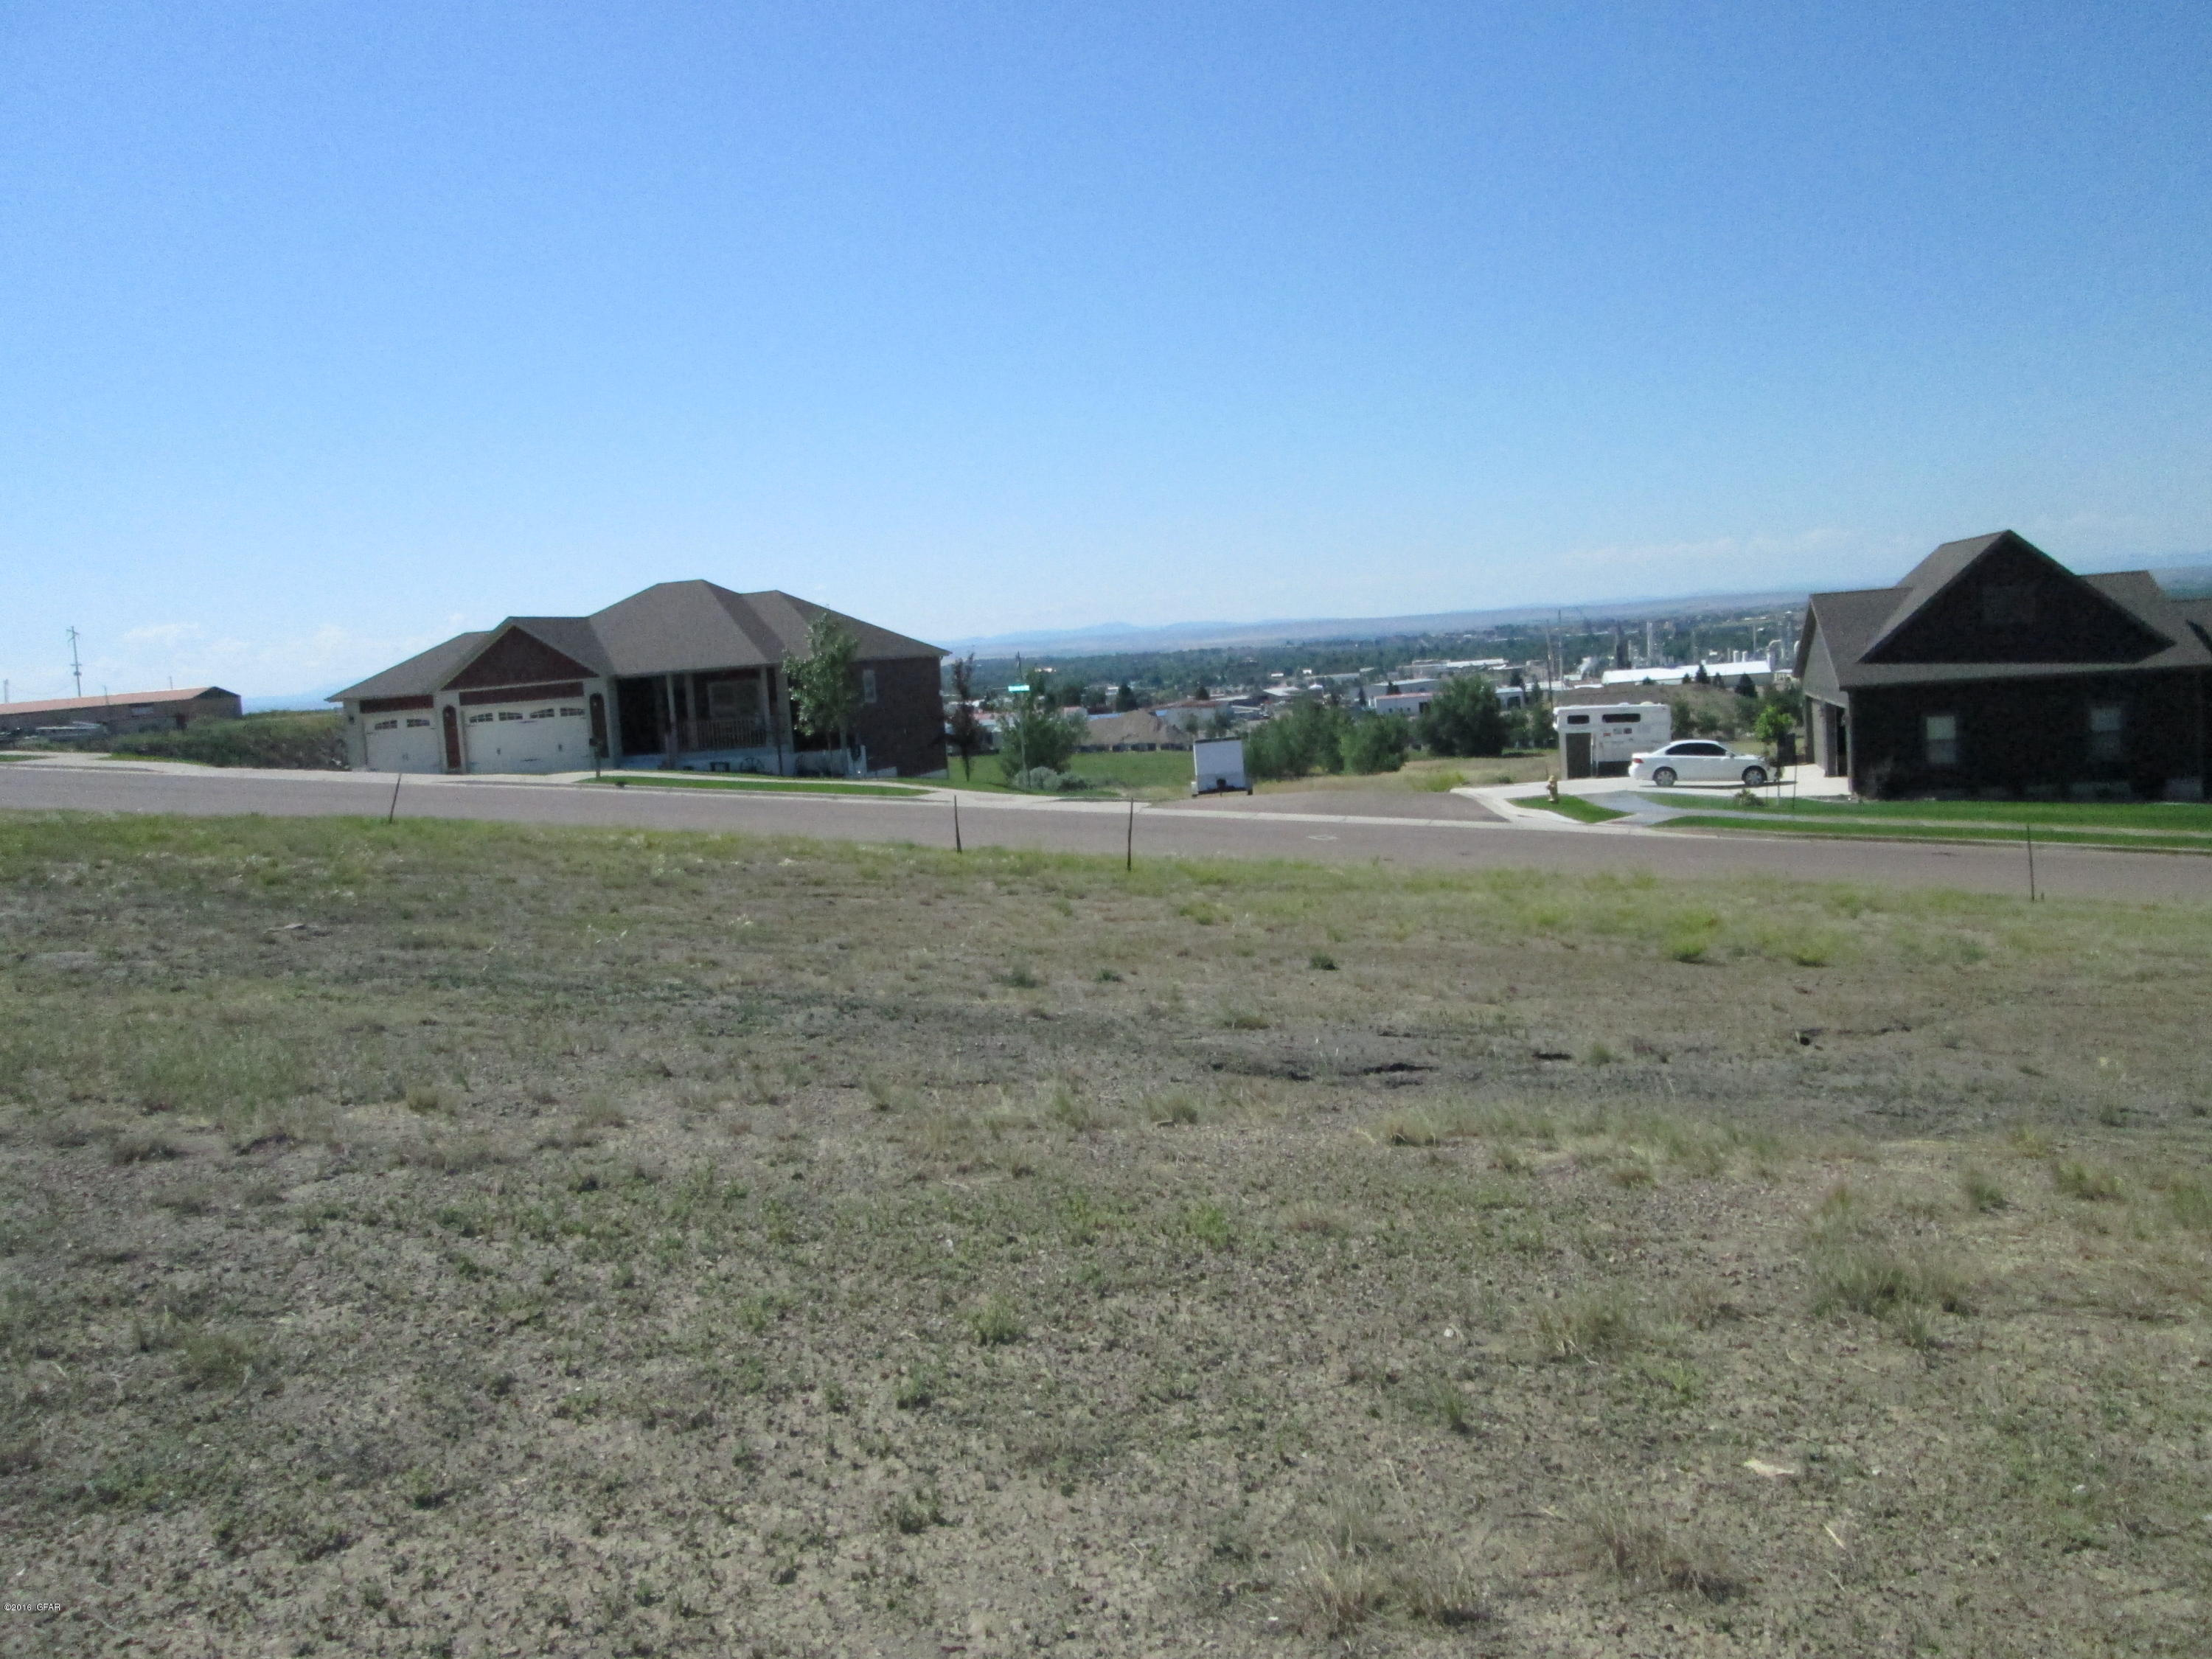 Beautiful piece of property right here in Great Falls to come build your dream home with a great view of the city. SID/RID: Unknown Service Level: Full Service